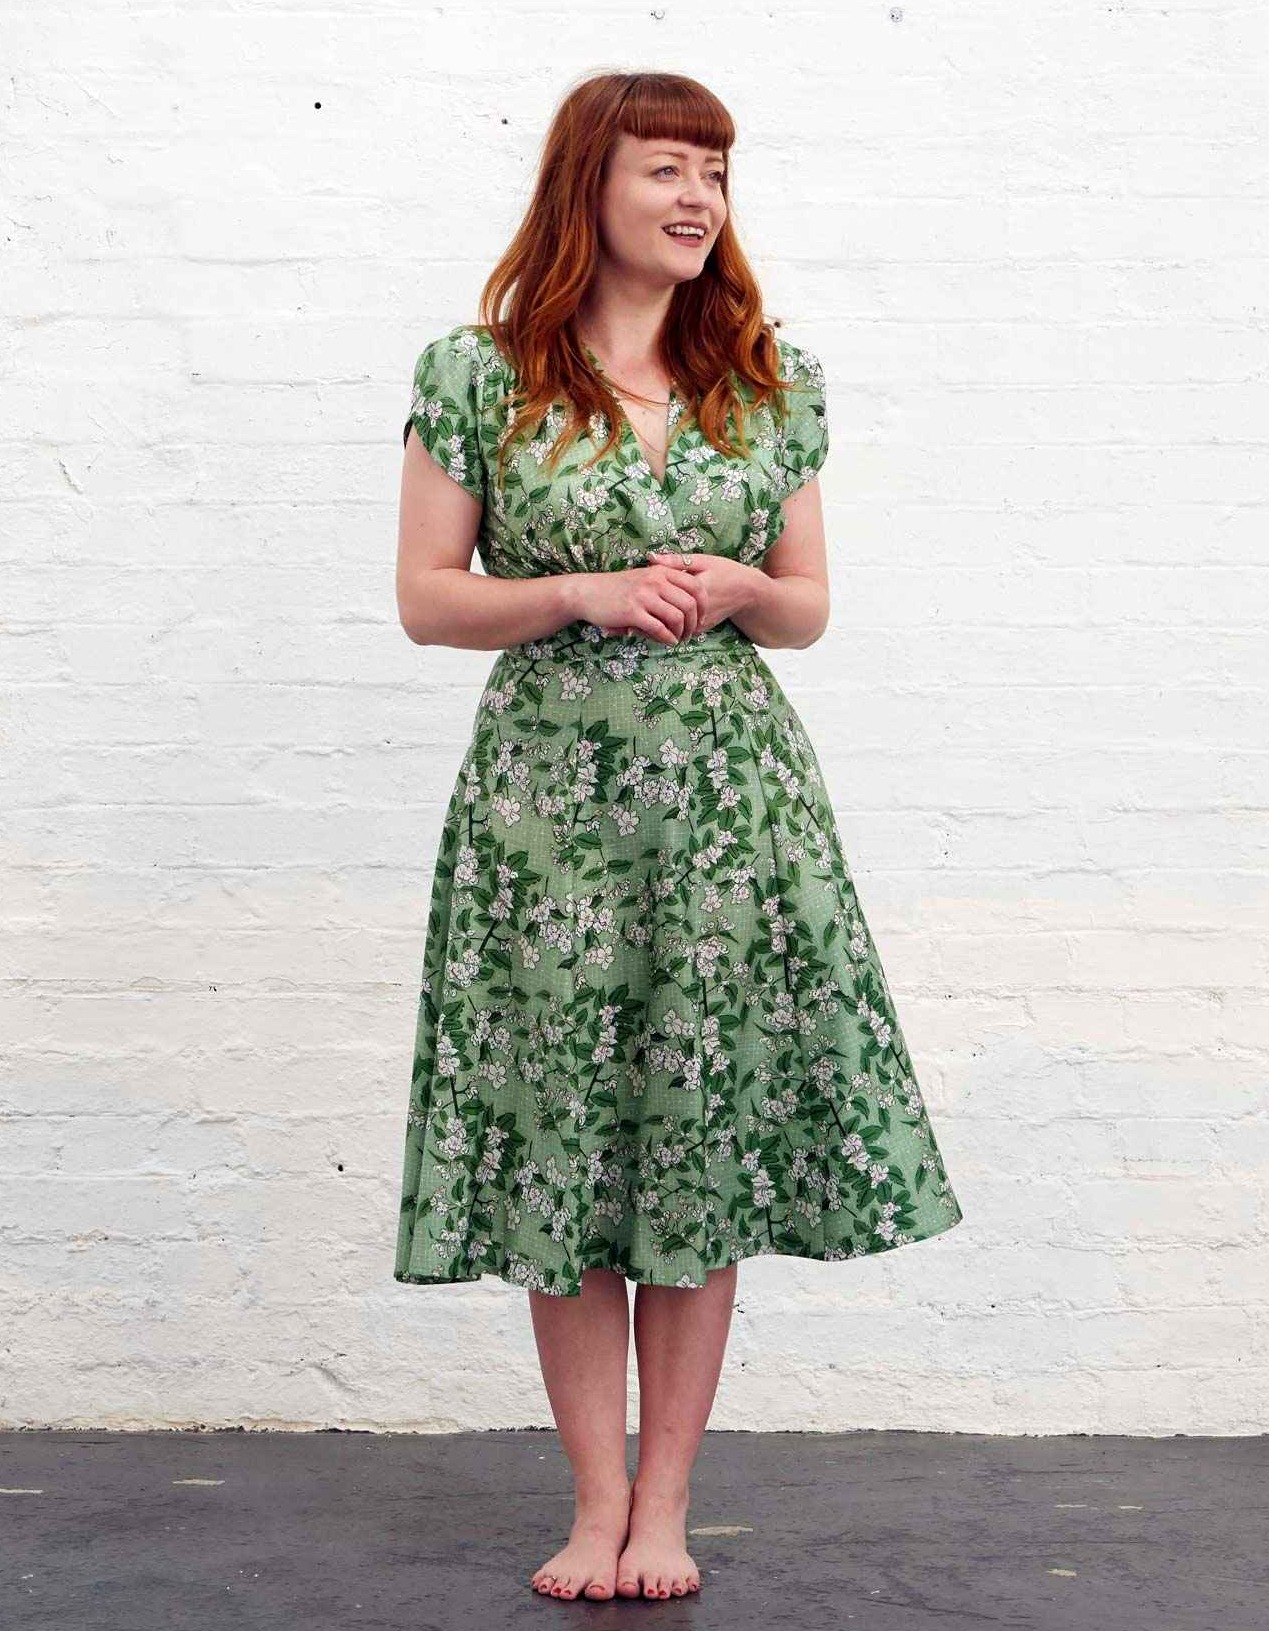 Vintage style dress with apple blossoms